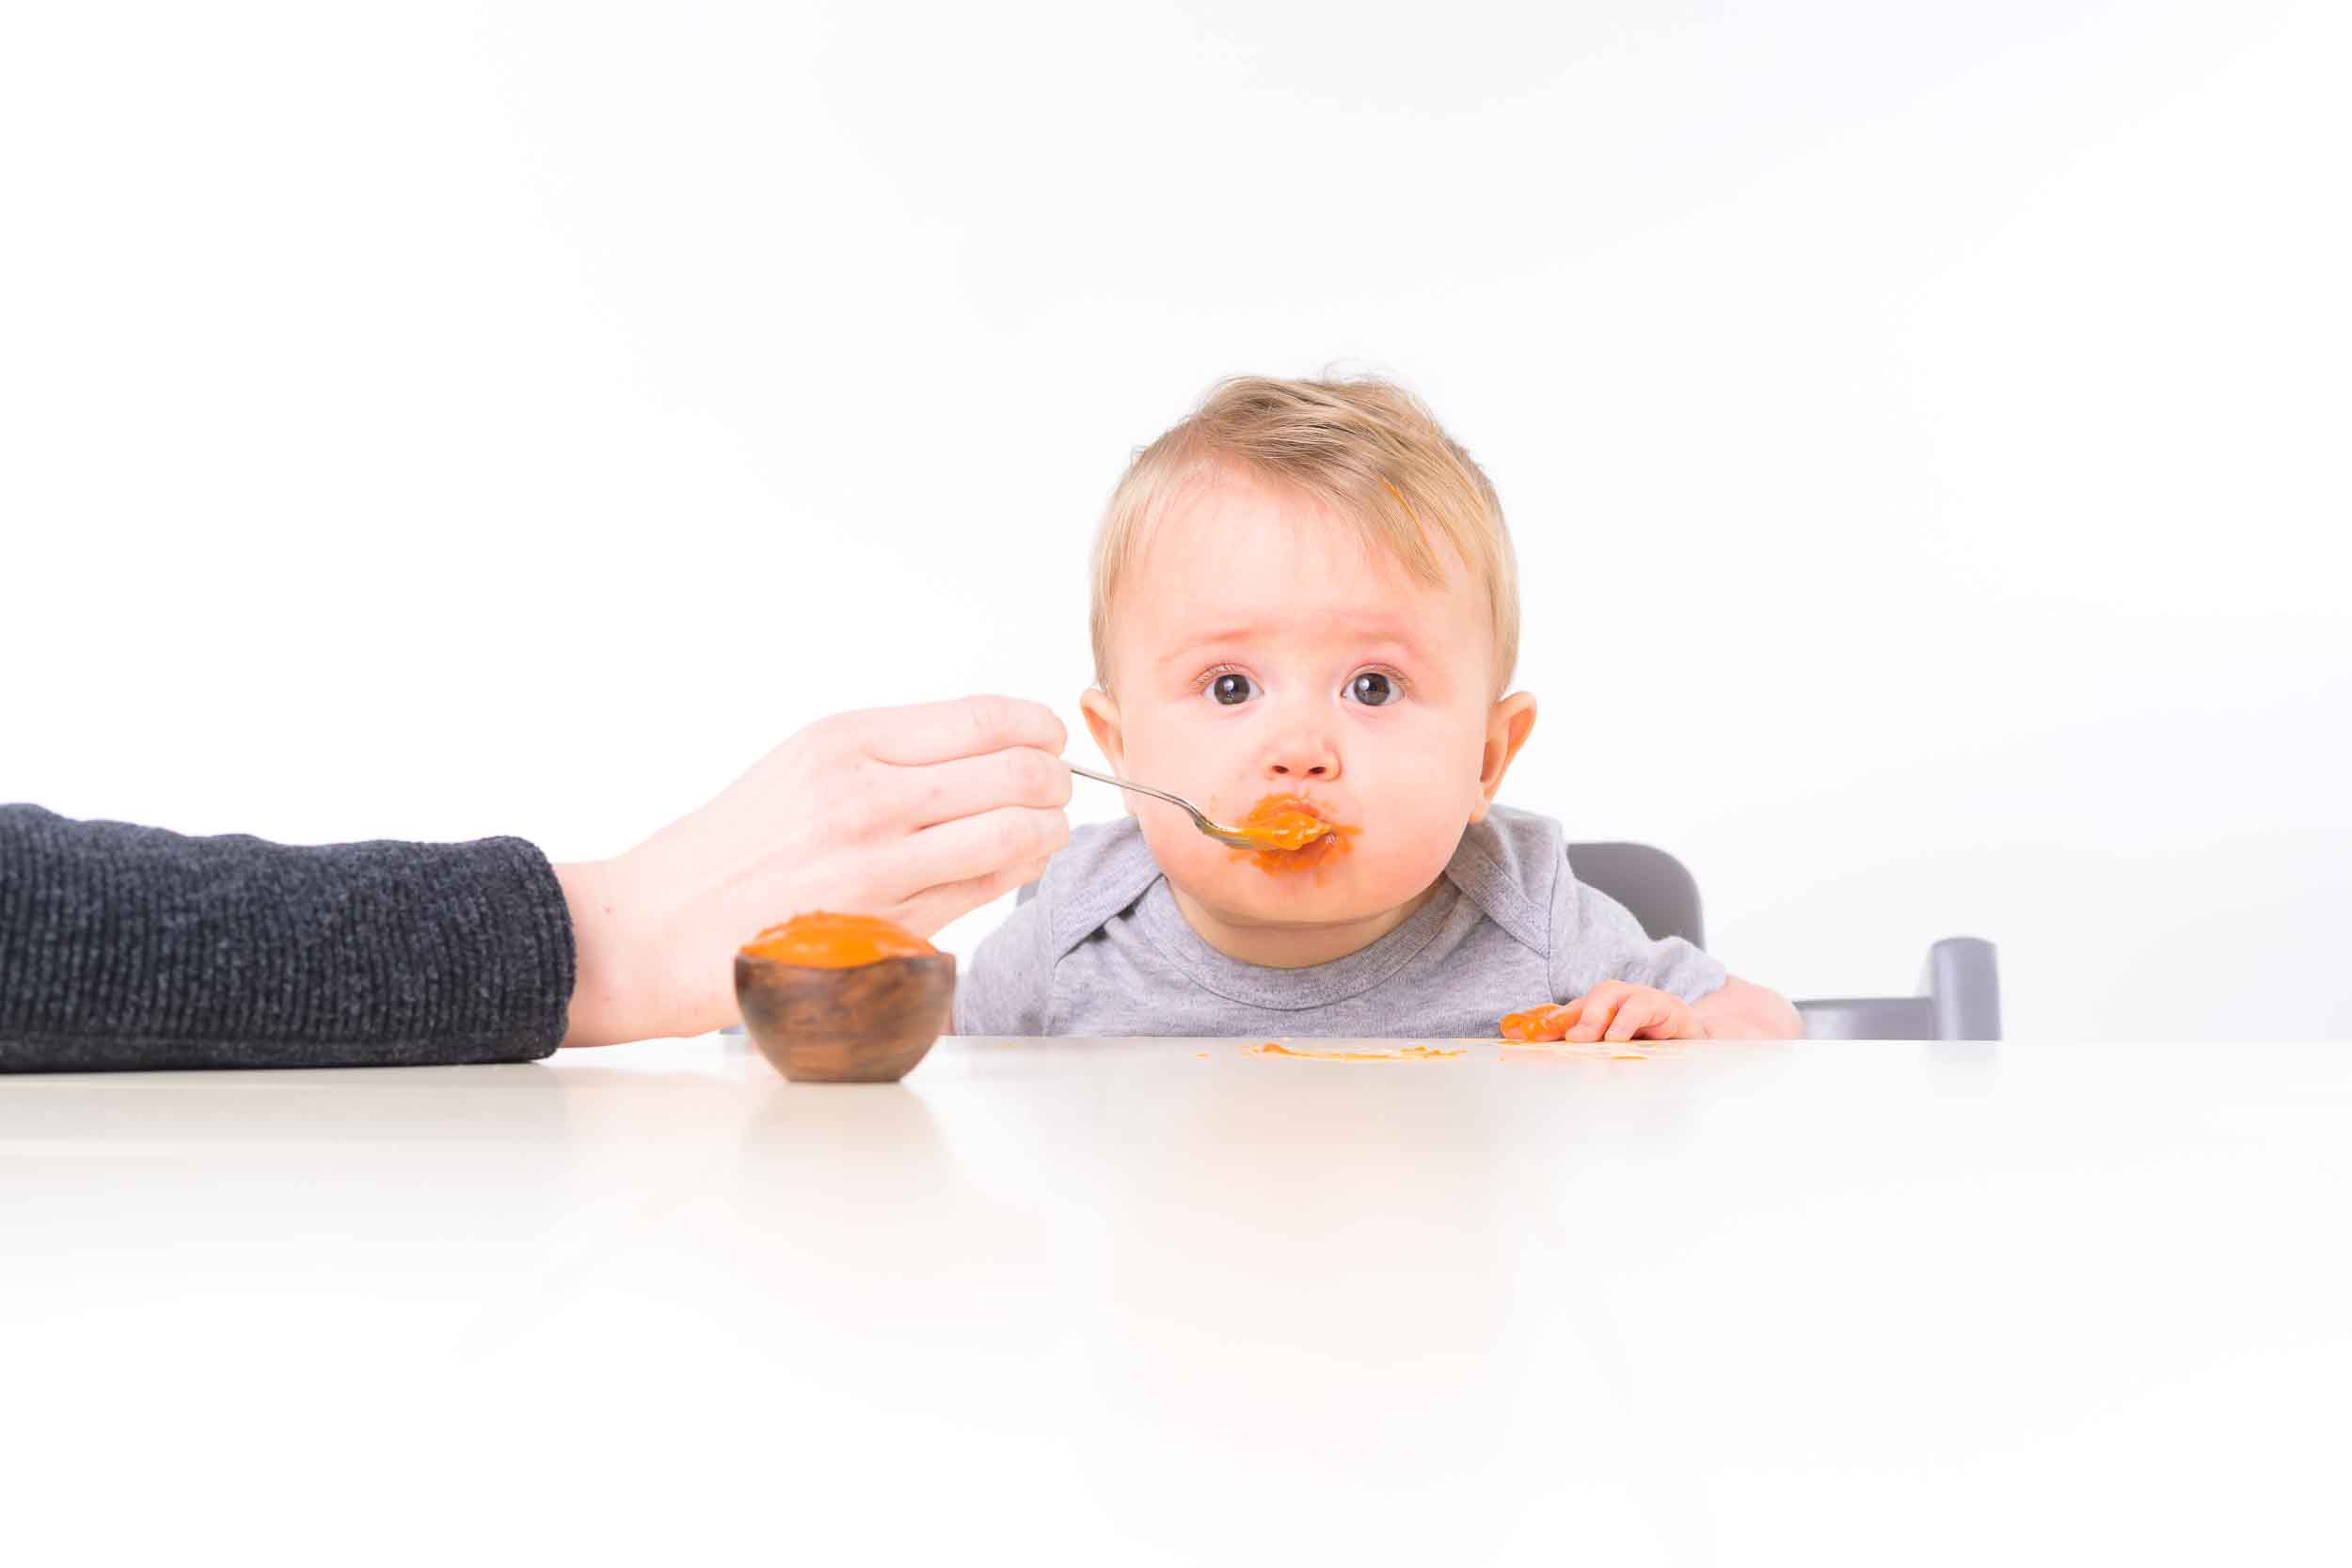 babies-little-food-co-business-commercial-professional-photographer-graham-images-washatka-wisconsin-appleton-green-bay-003-0101-blog.jpg